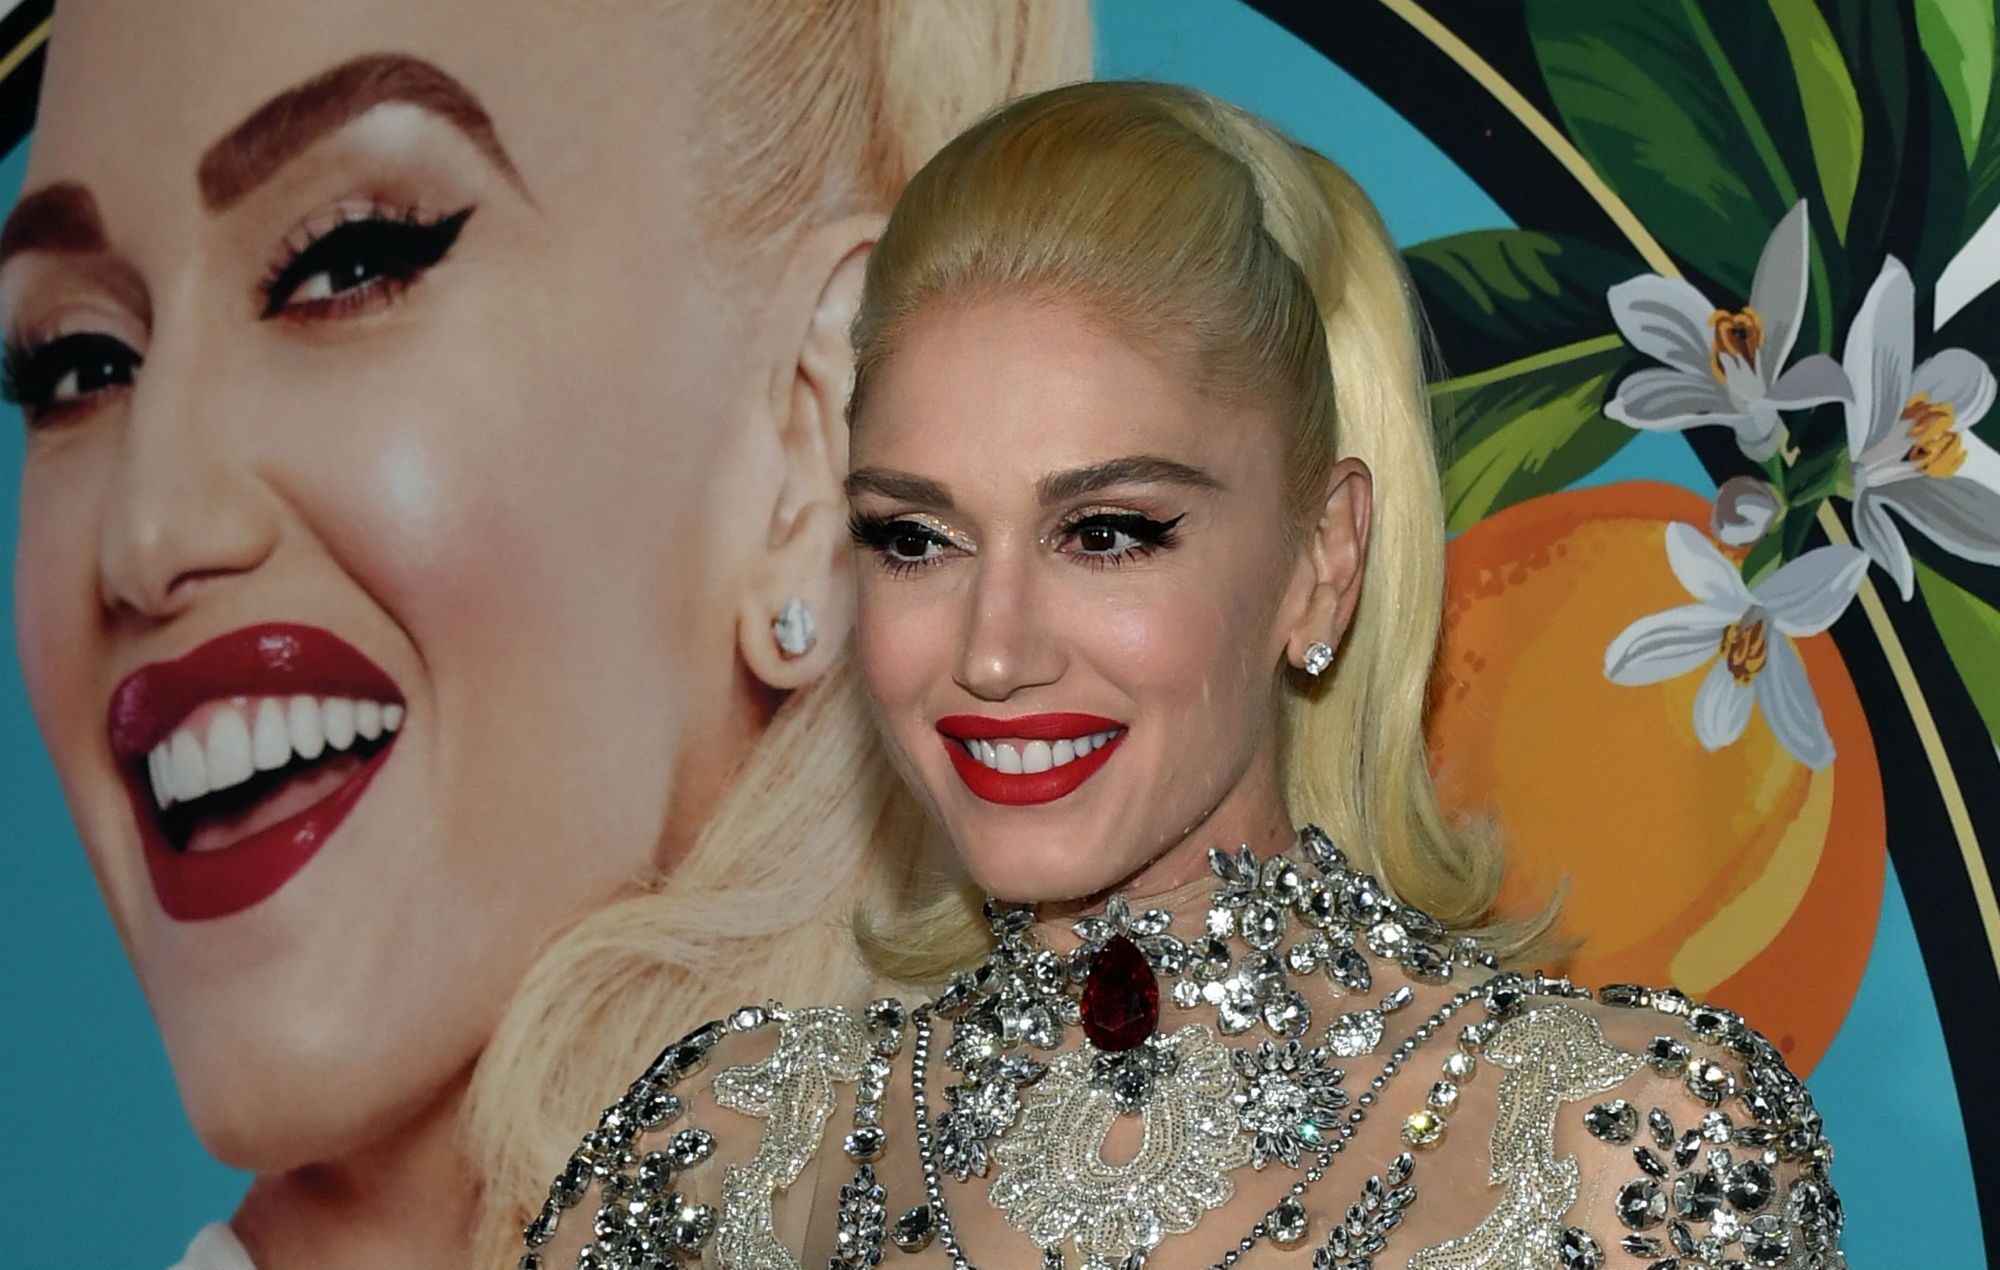 Gwen Stefani to face lawsuit for causing stampede at concert